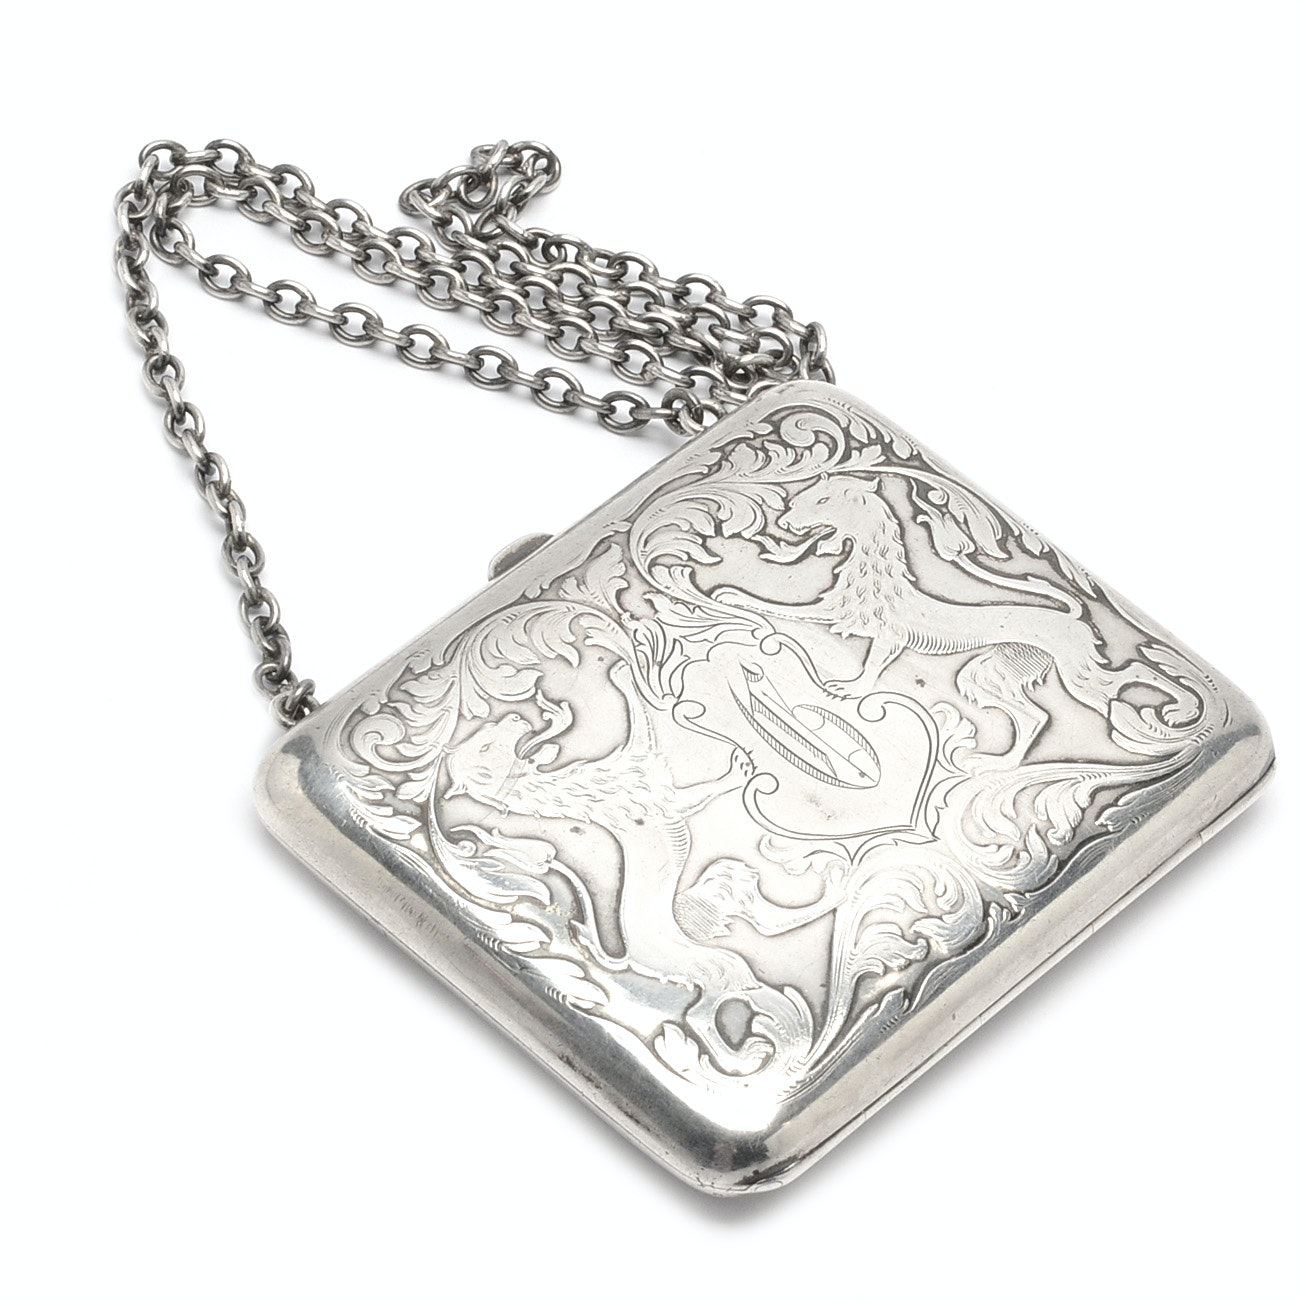 Antique Sterling Silver Cigarette Case Converted to Small Purse